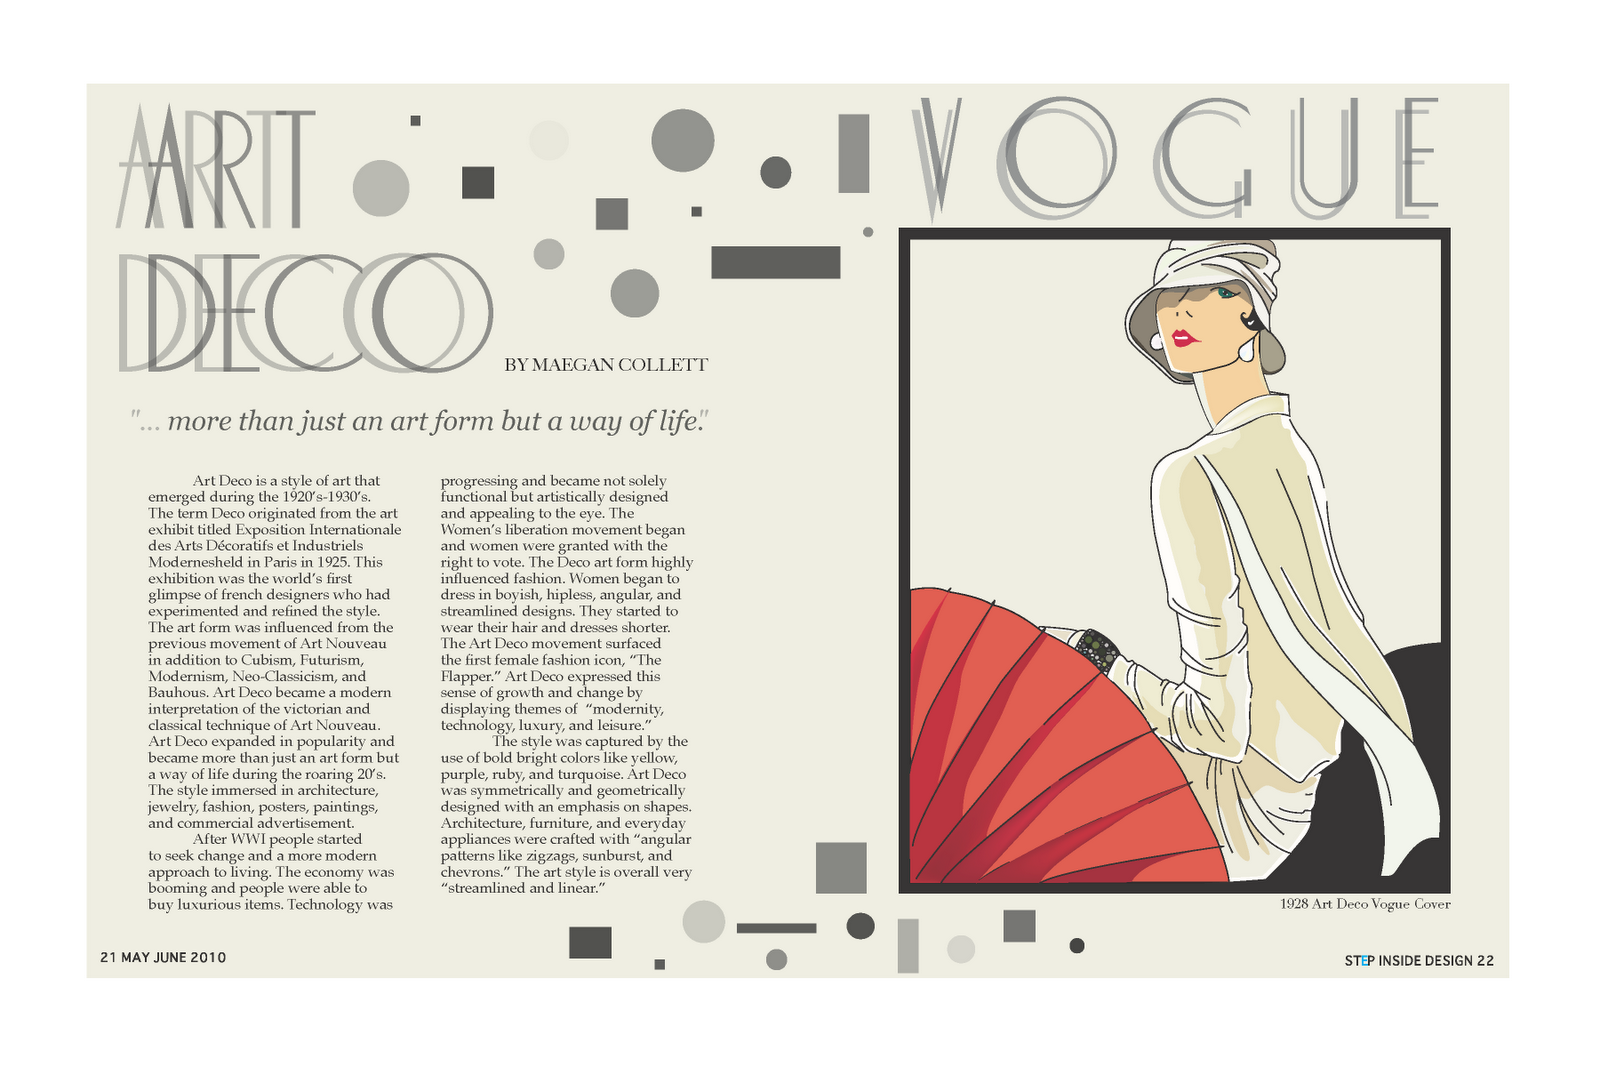 Feather Of Lead Designs Recreated Art Deco Image Magazine